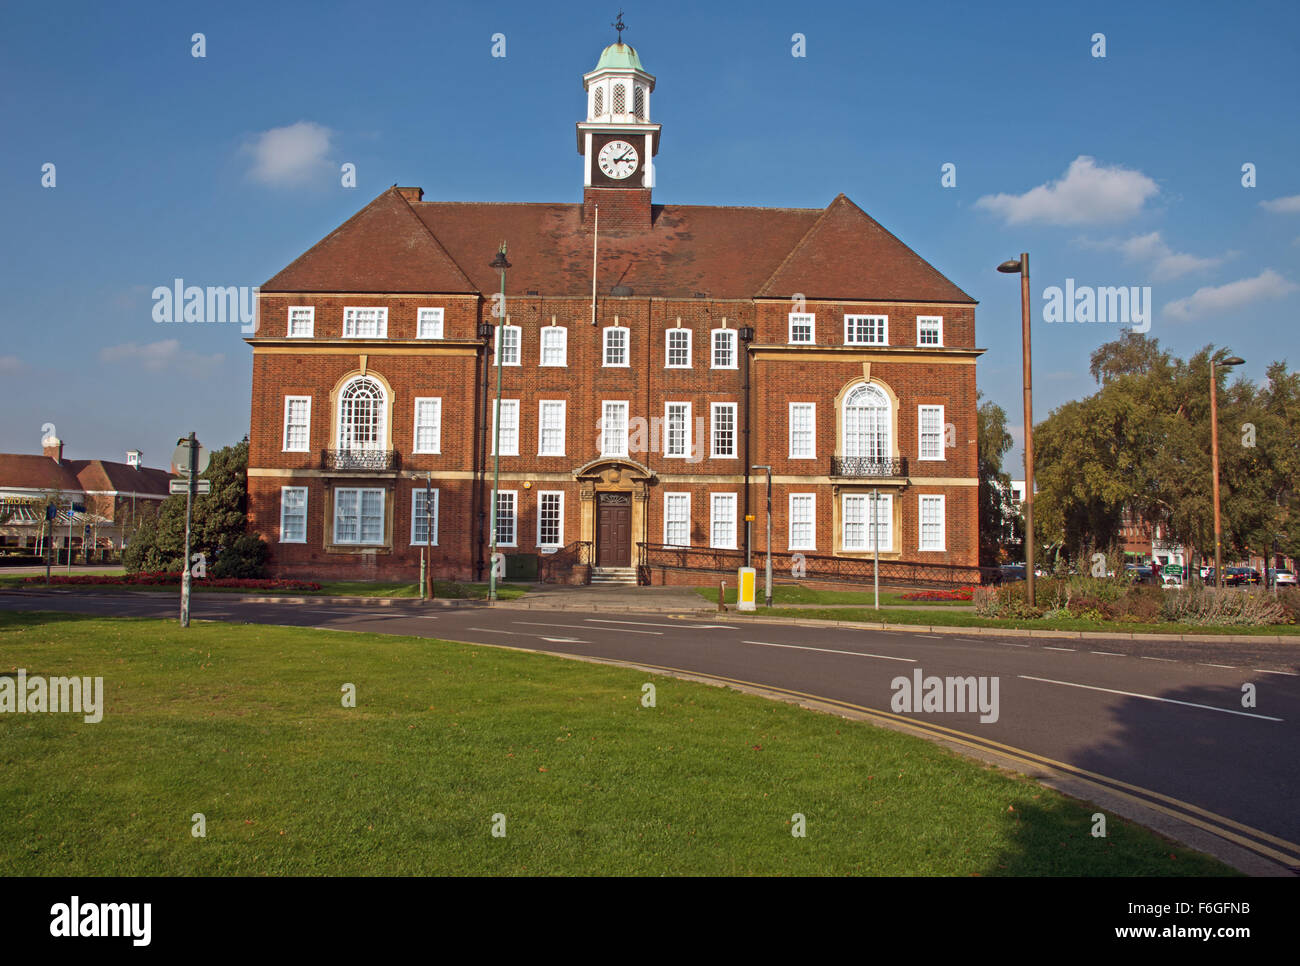 Letchworth Town Hall Hertfordshire Stock Photos & Letchworth Town ...